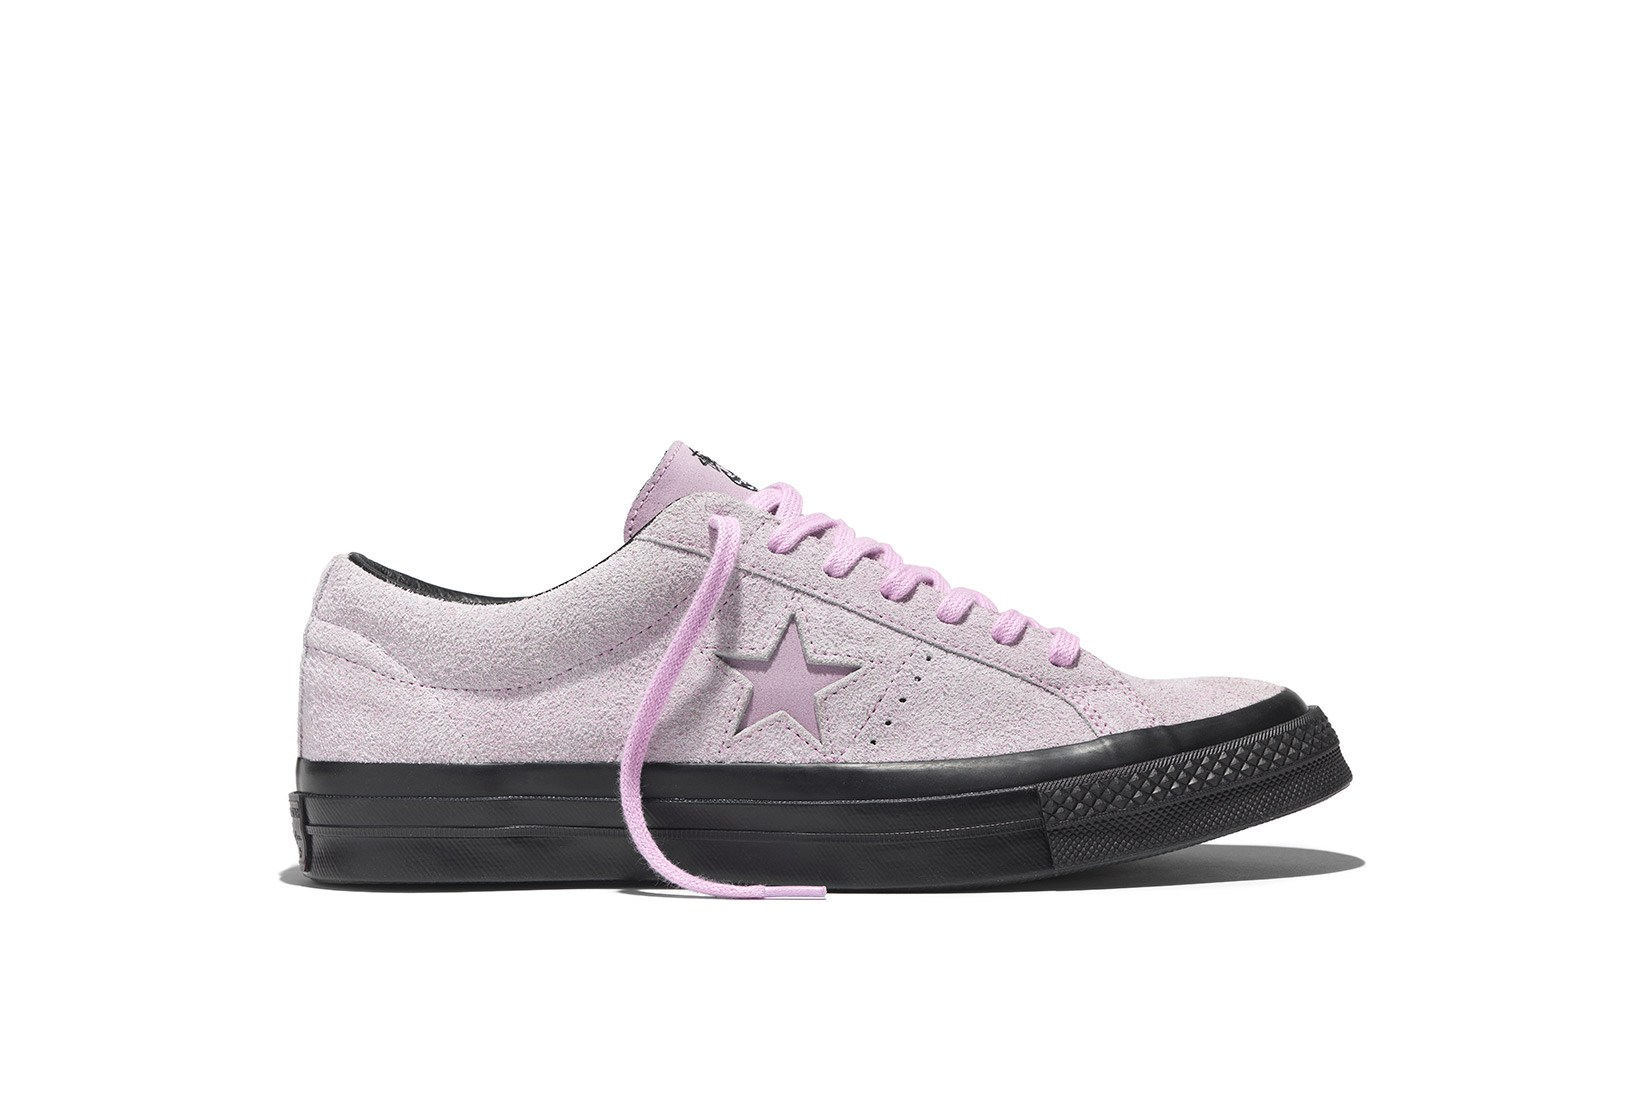 stussy-converse-one-star-silhouette-4